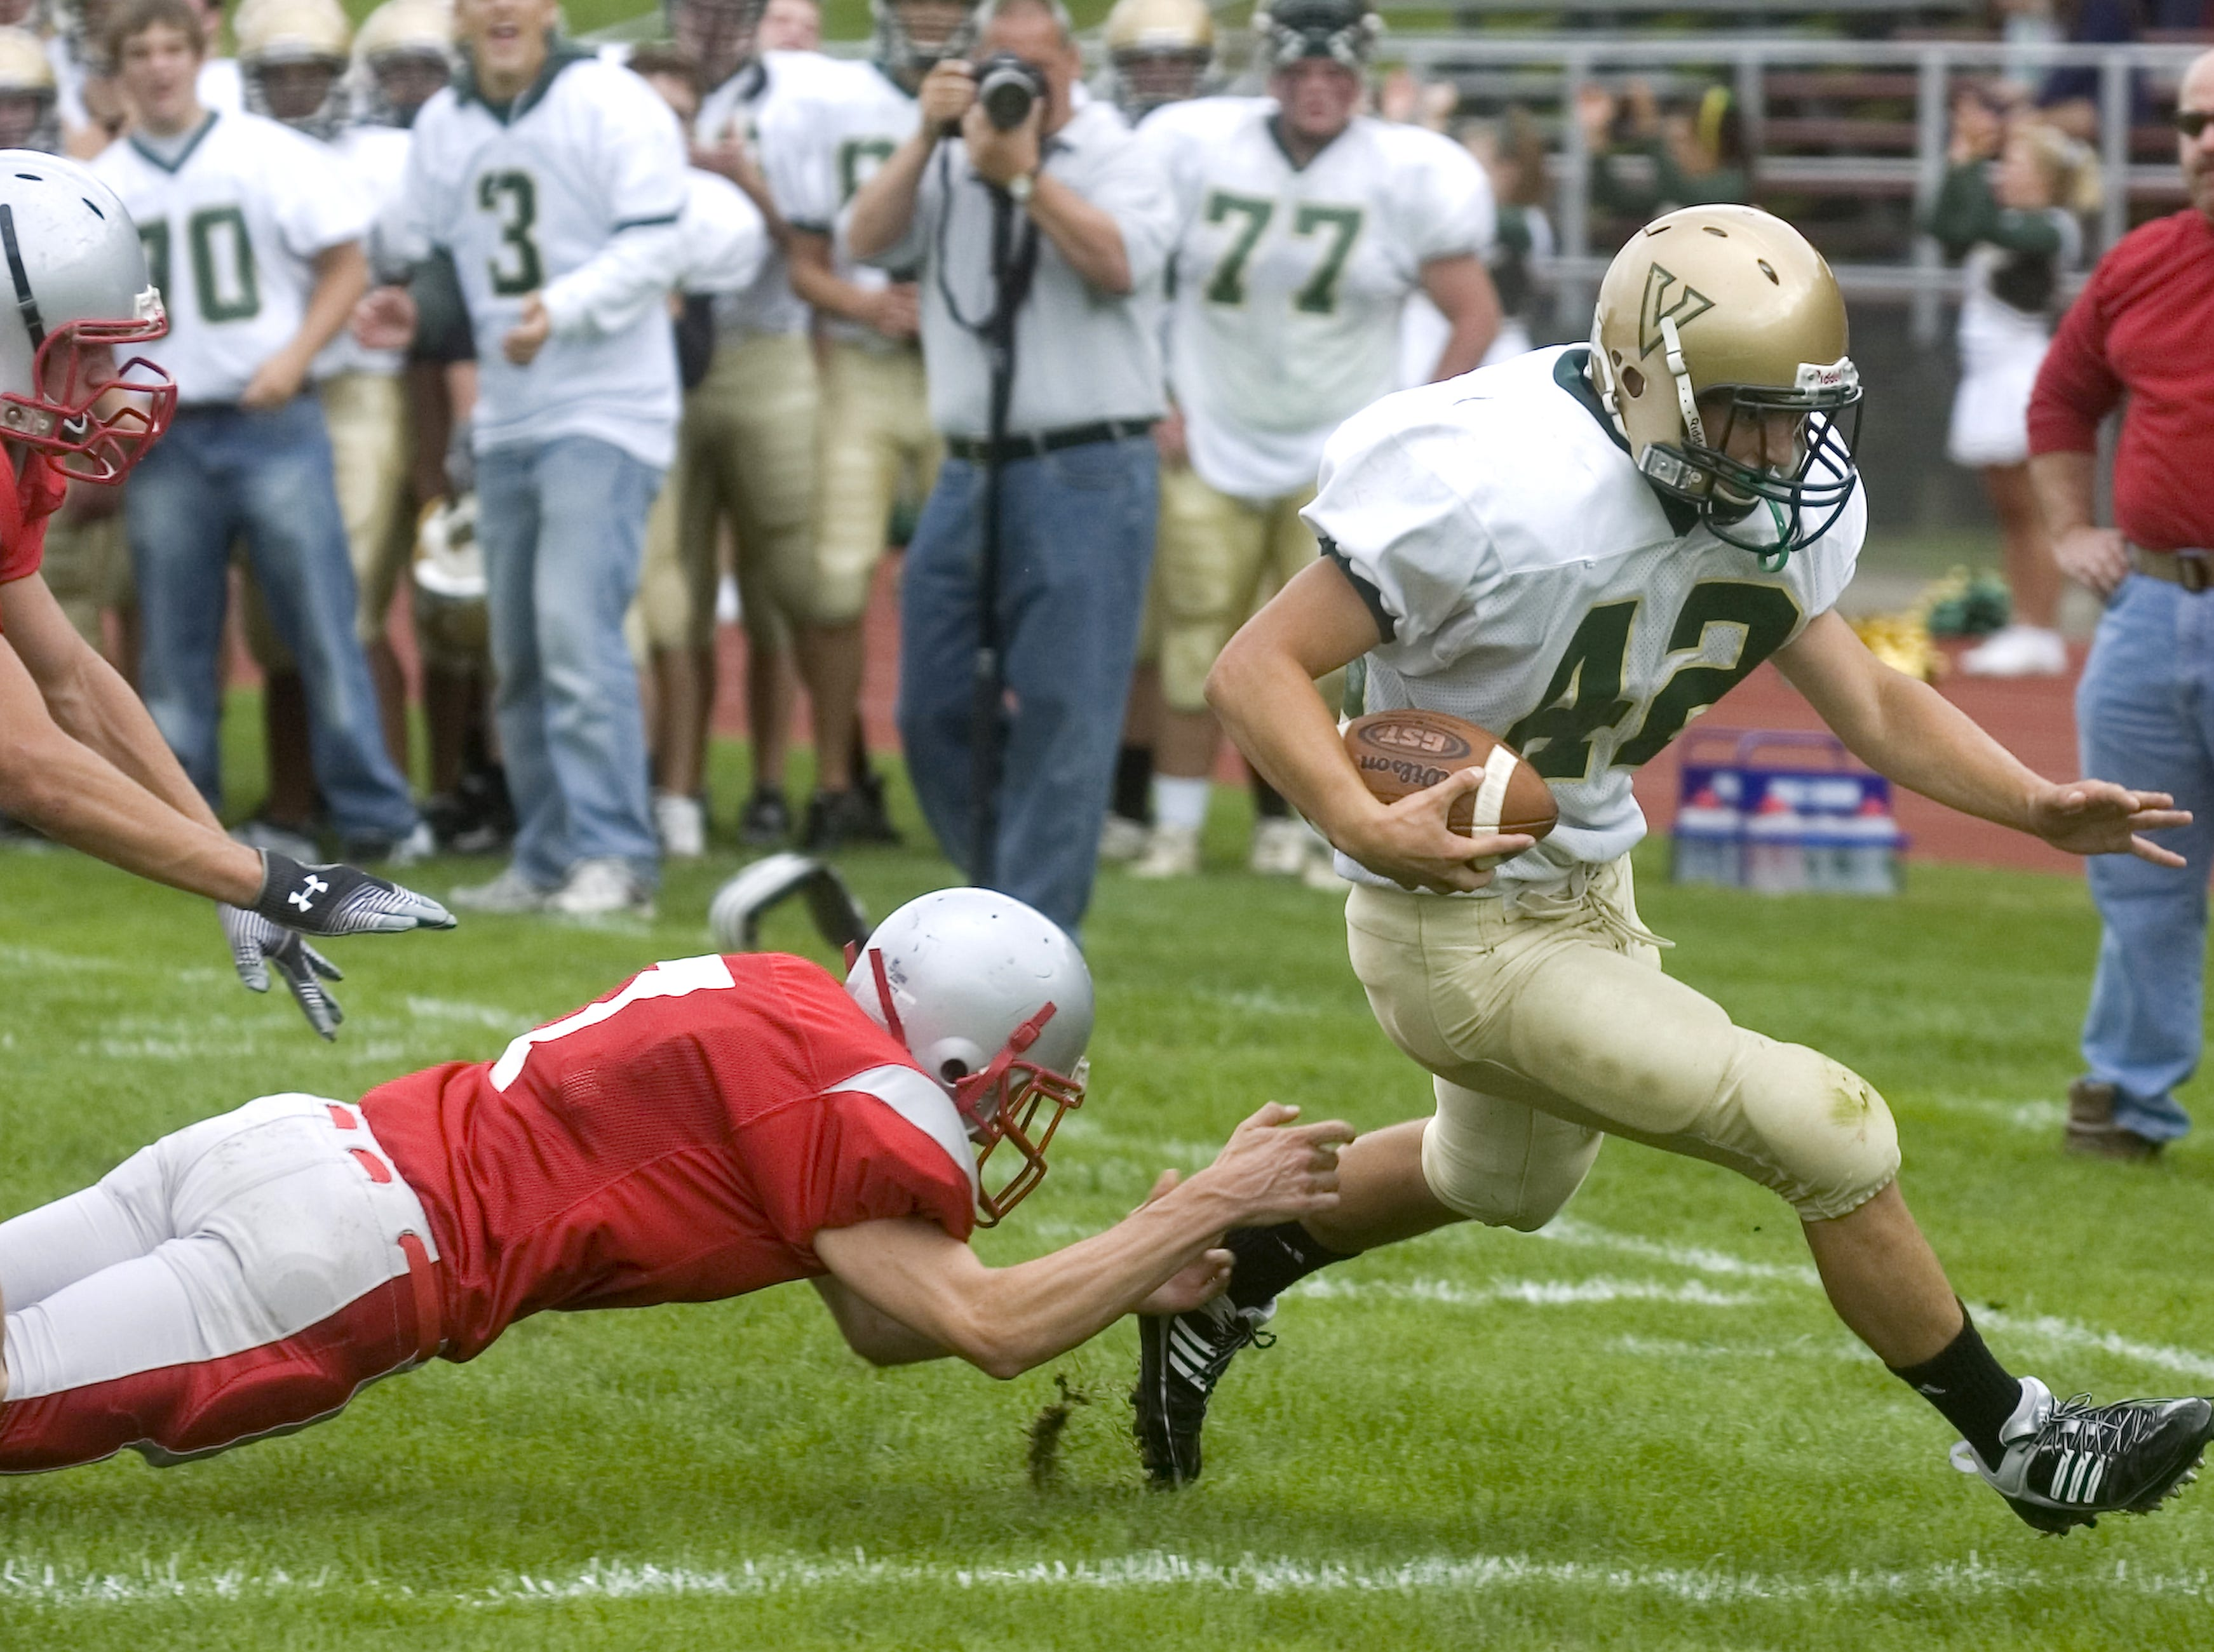 From 2009: Vestal's Thad Zaparzynski, right, dodges Chenango Valley's Conor Mahoney to reach the end zone in the second quarter of Saturday's game at CV.